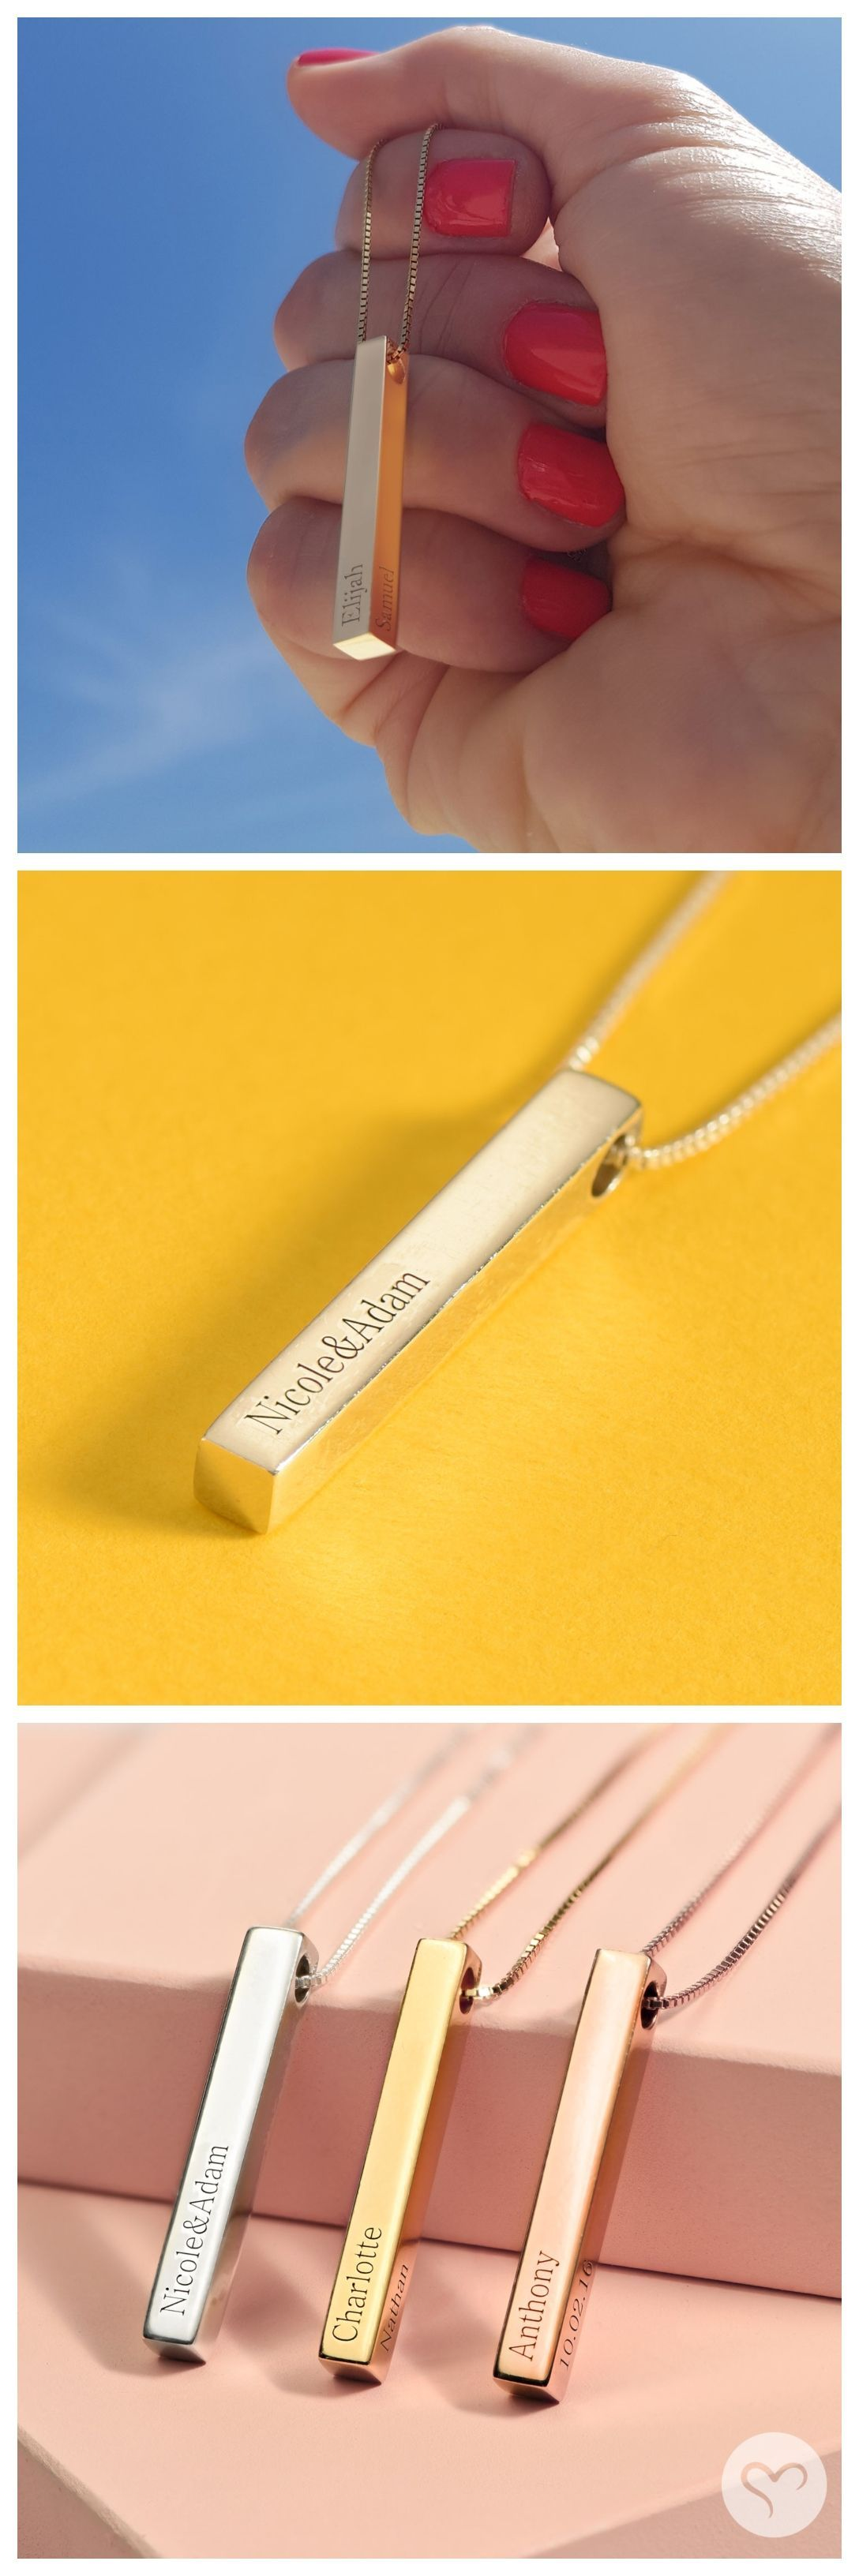 D engraved bar necklace in gold plating in hair colors rose